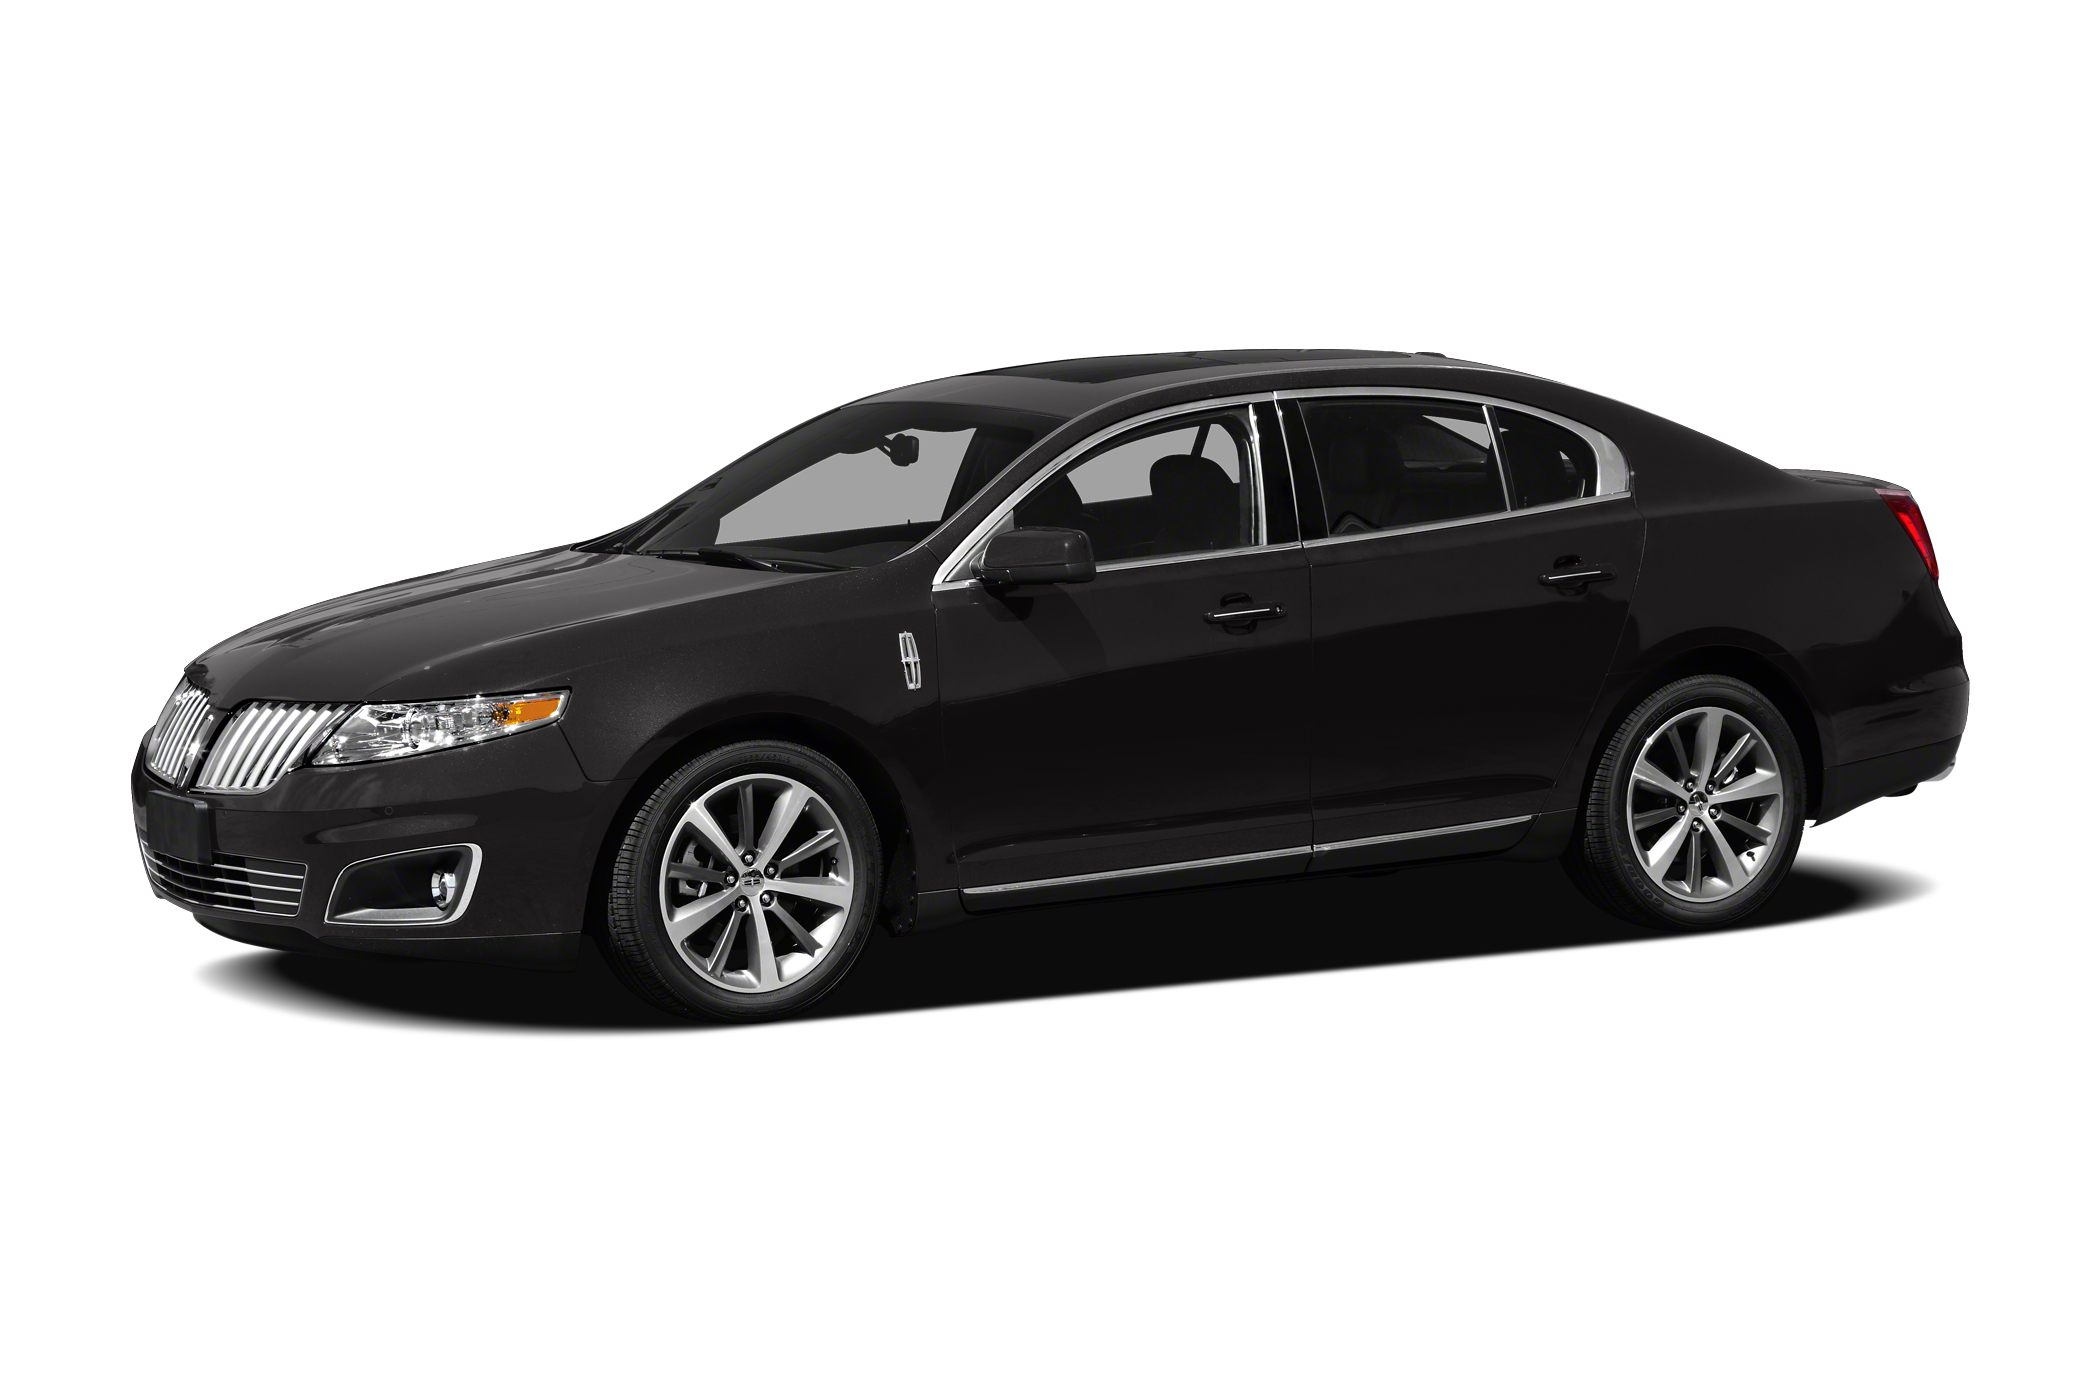 2012 Lincoln MKS Base Sedan for sale in Amarillo for $27,998 with 17,275 miles.